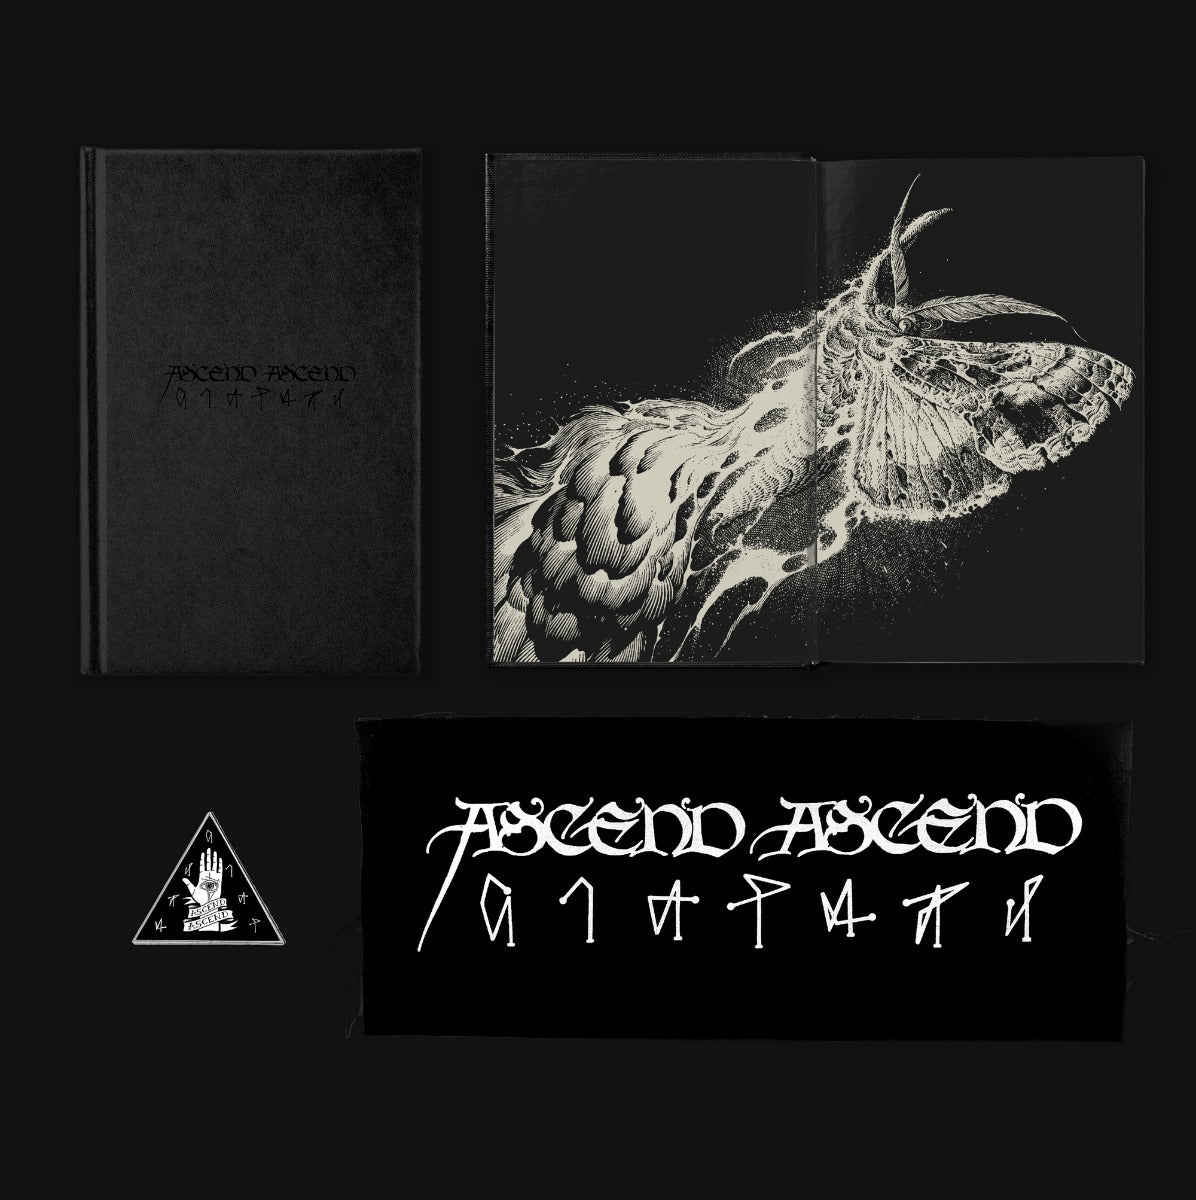 Ascend Ascend: Special Edition The signed, hardcover, special edition of ASCEND ASCEND by Janaka Stucky from Third Man Books will have a black-on-black foil debossed cover, with the illustration by Aaron Horkey printed across its inside front cover and